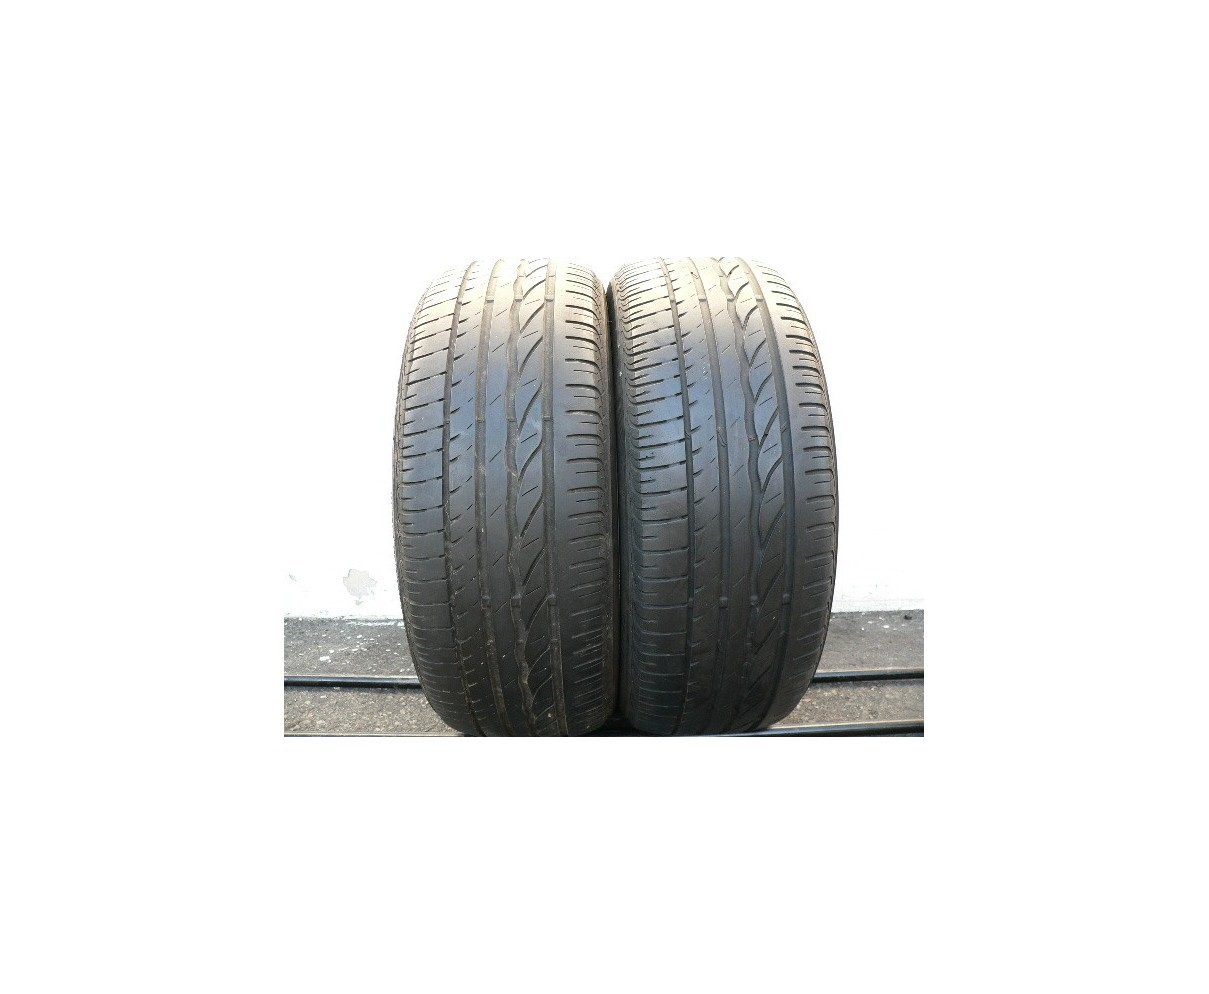 2 used tires 205 55 16 Bridgestone Turanza ER 300 Run Flat 50% life